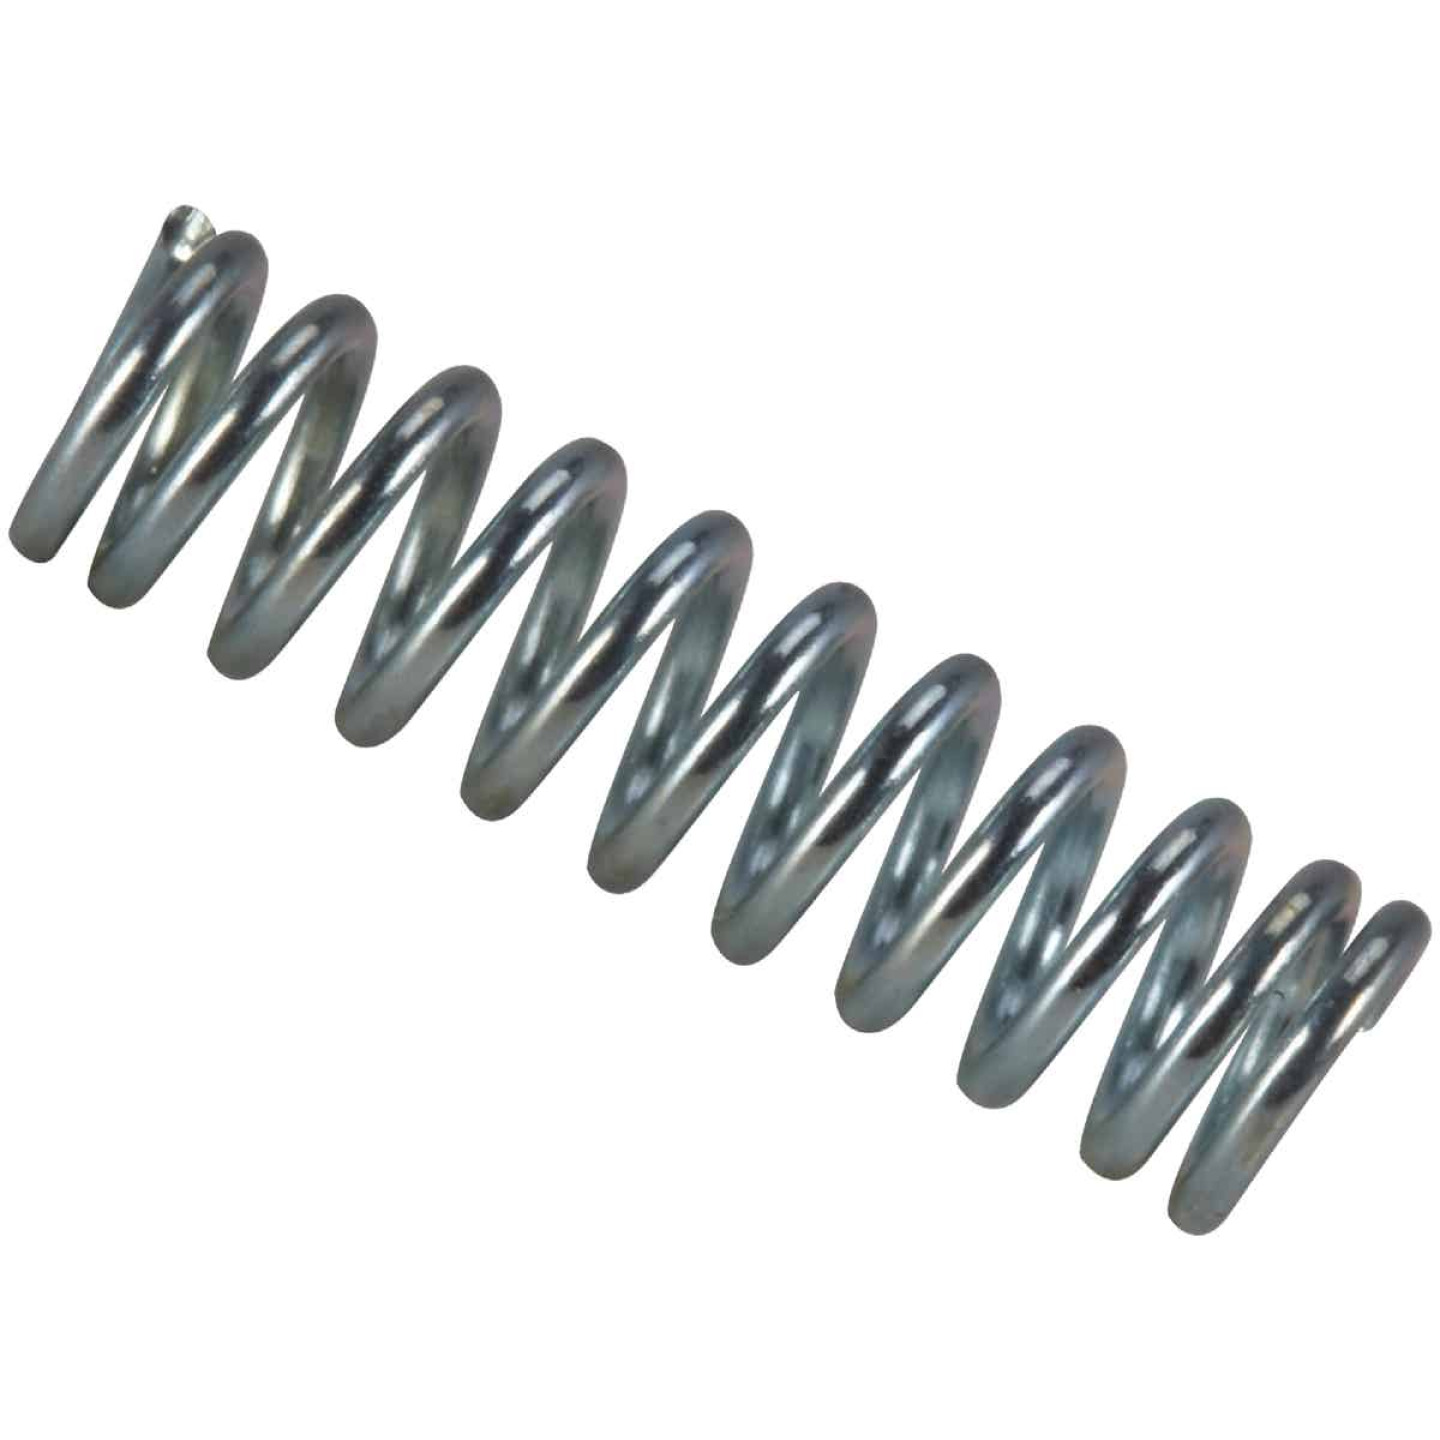 Century Spring 1-1/2 In. x 1/2 In. Compression Spring (2 Count) Image 1